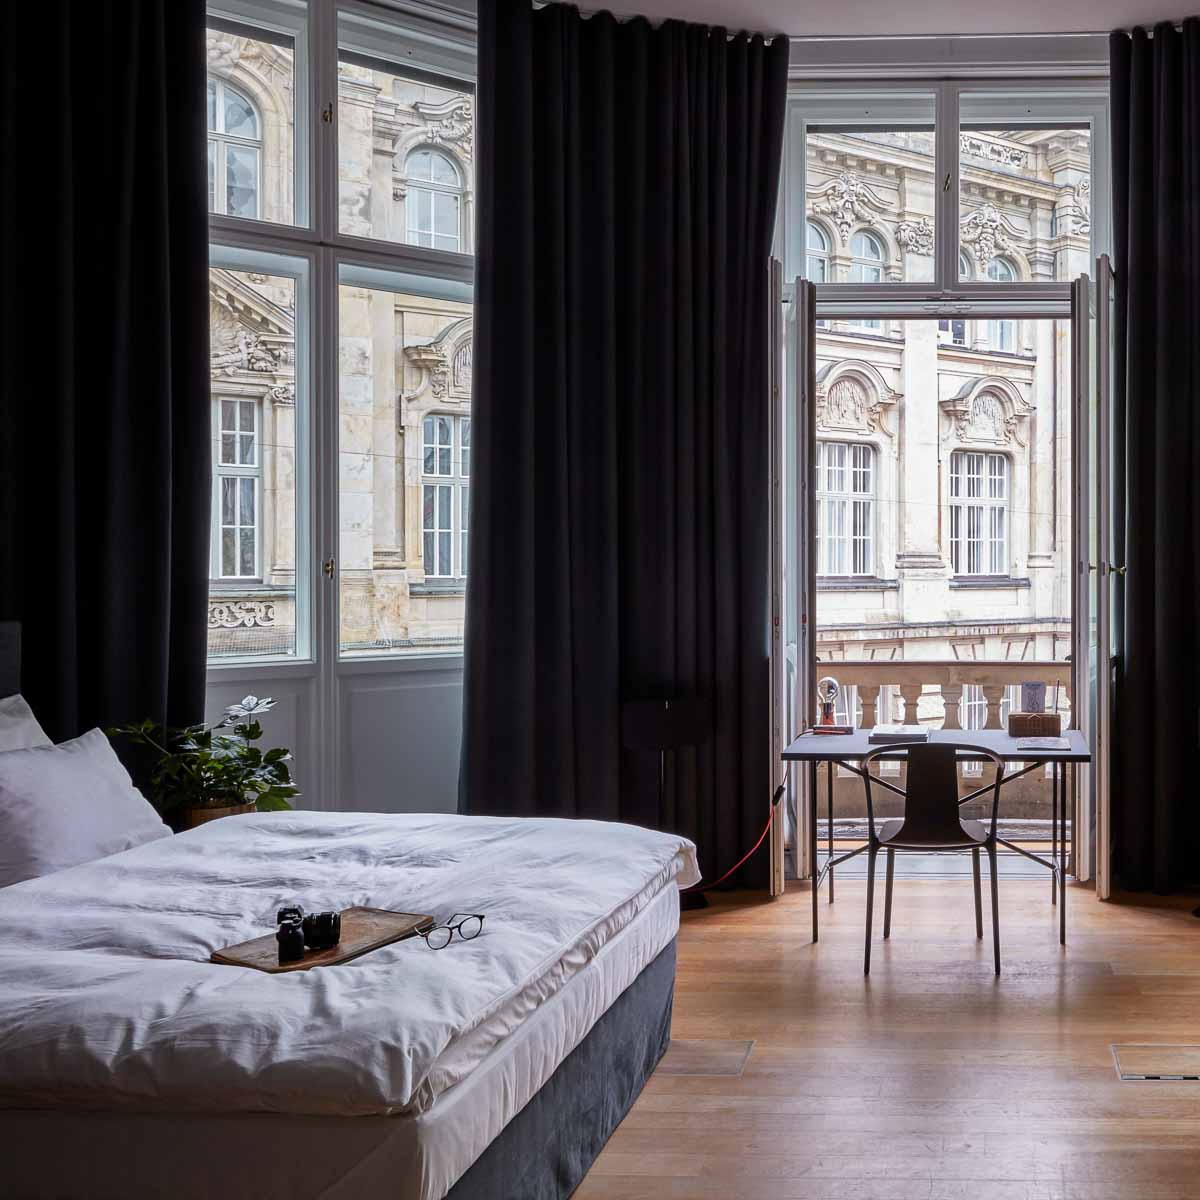 The Lovelace Hotel München